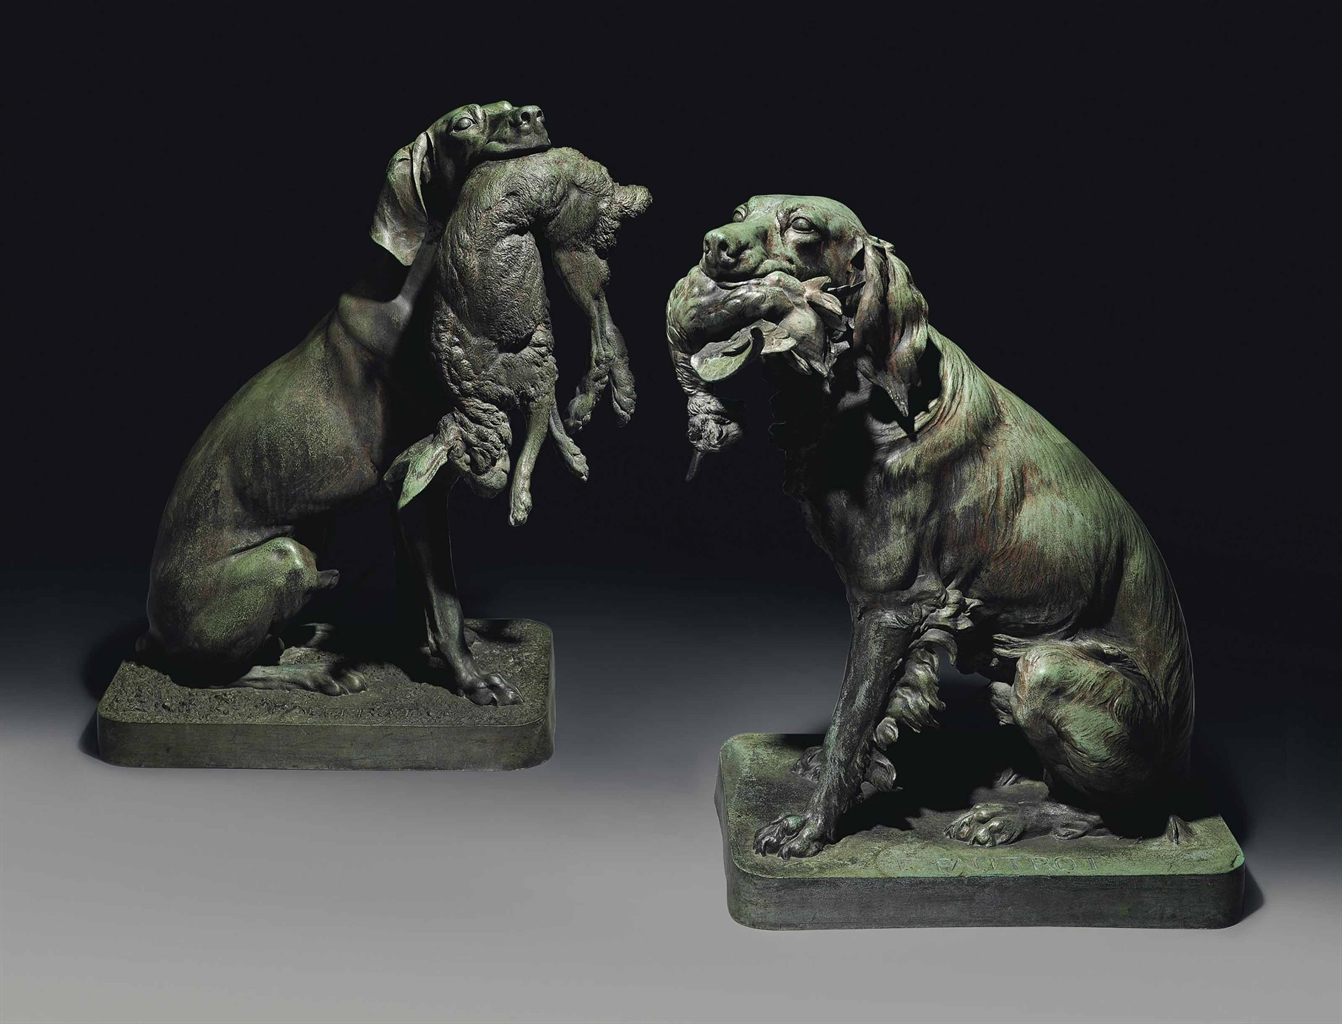 Ferdinand Pautrot (French, 1832-1874), Épagneul et Sarcelles et Chien Braque et Lièvre (Spaniel with a Teal and Pointer with a Hare). Bronze, green-brown patina, 31 ¼ in. (79.5 cm.) high and 33 ¾ in. (86 cm.) high, (2). Estimate £80,000-120,000. This lot is offered in The Opulent Eye — 19th-Century Furniture, Sculpture, Works of Art, Ceramics & Carpets